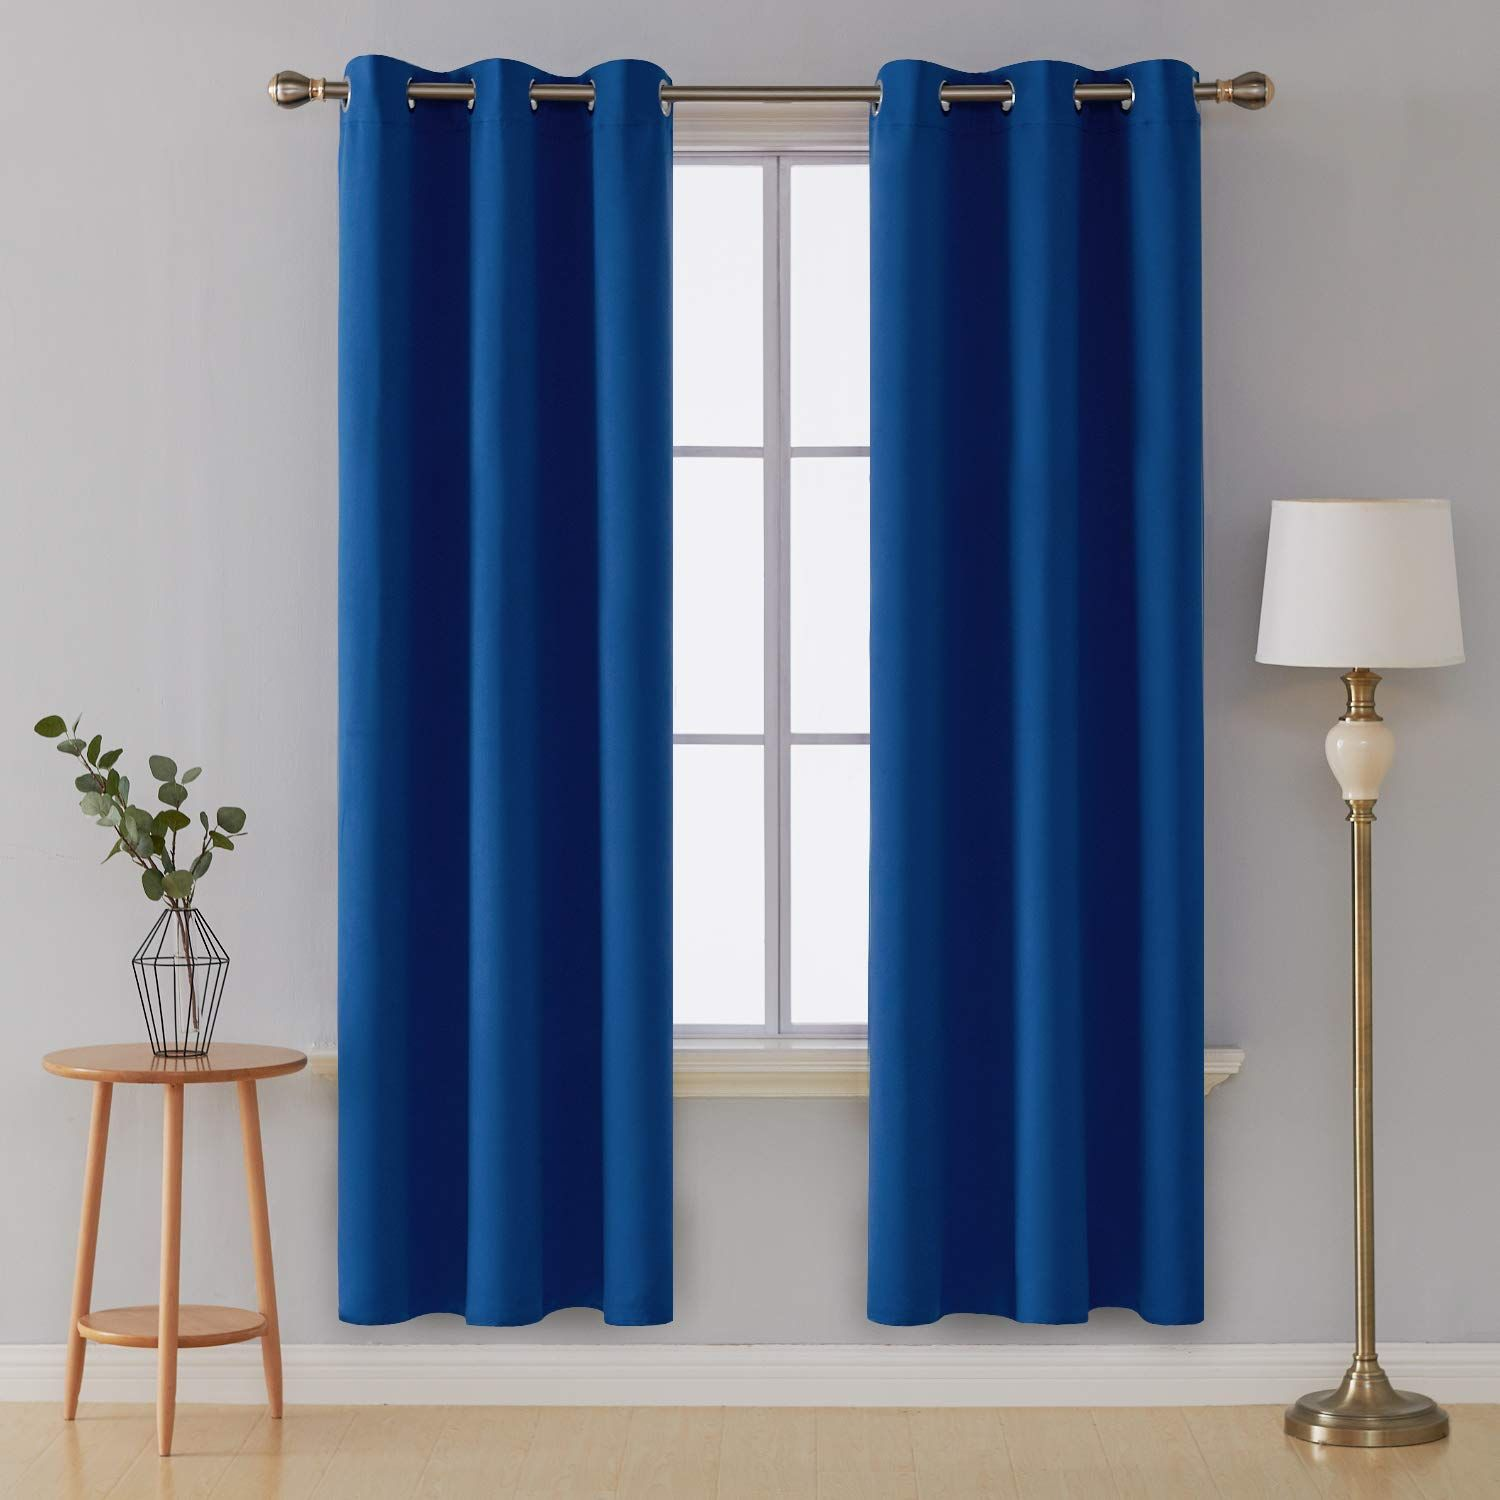 Deconovo Grommet Window Panels Thermal Insulated Curtains Room